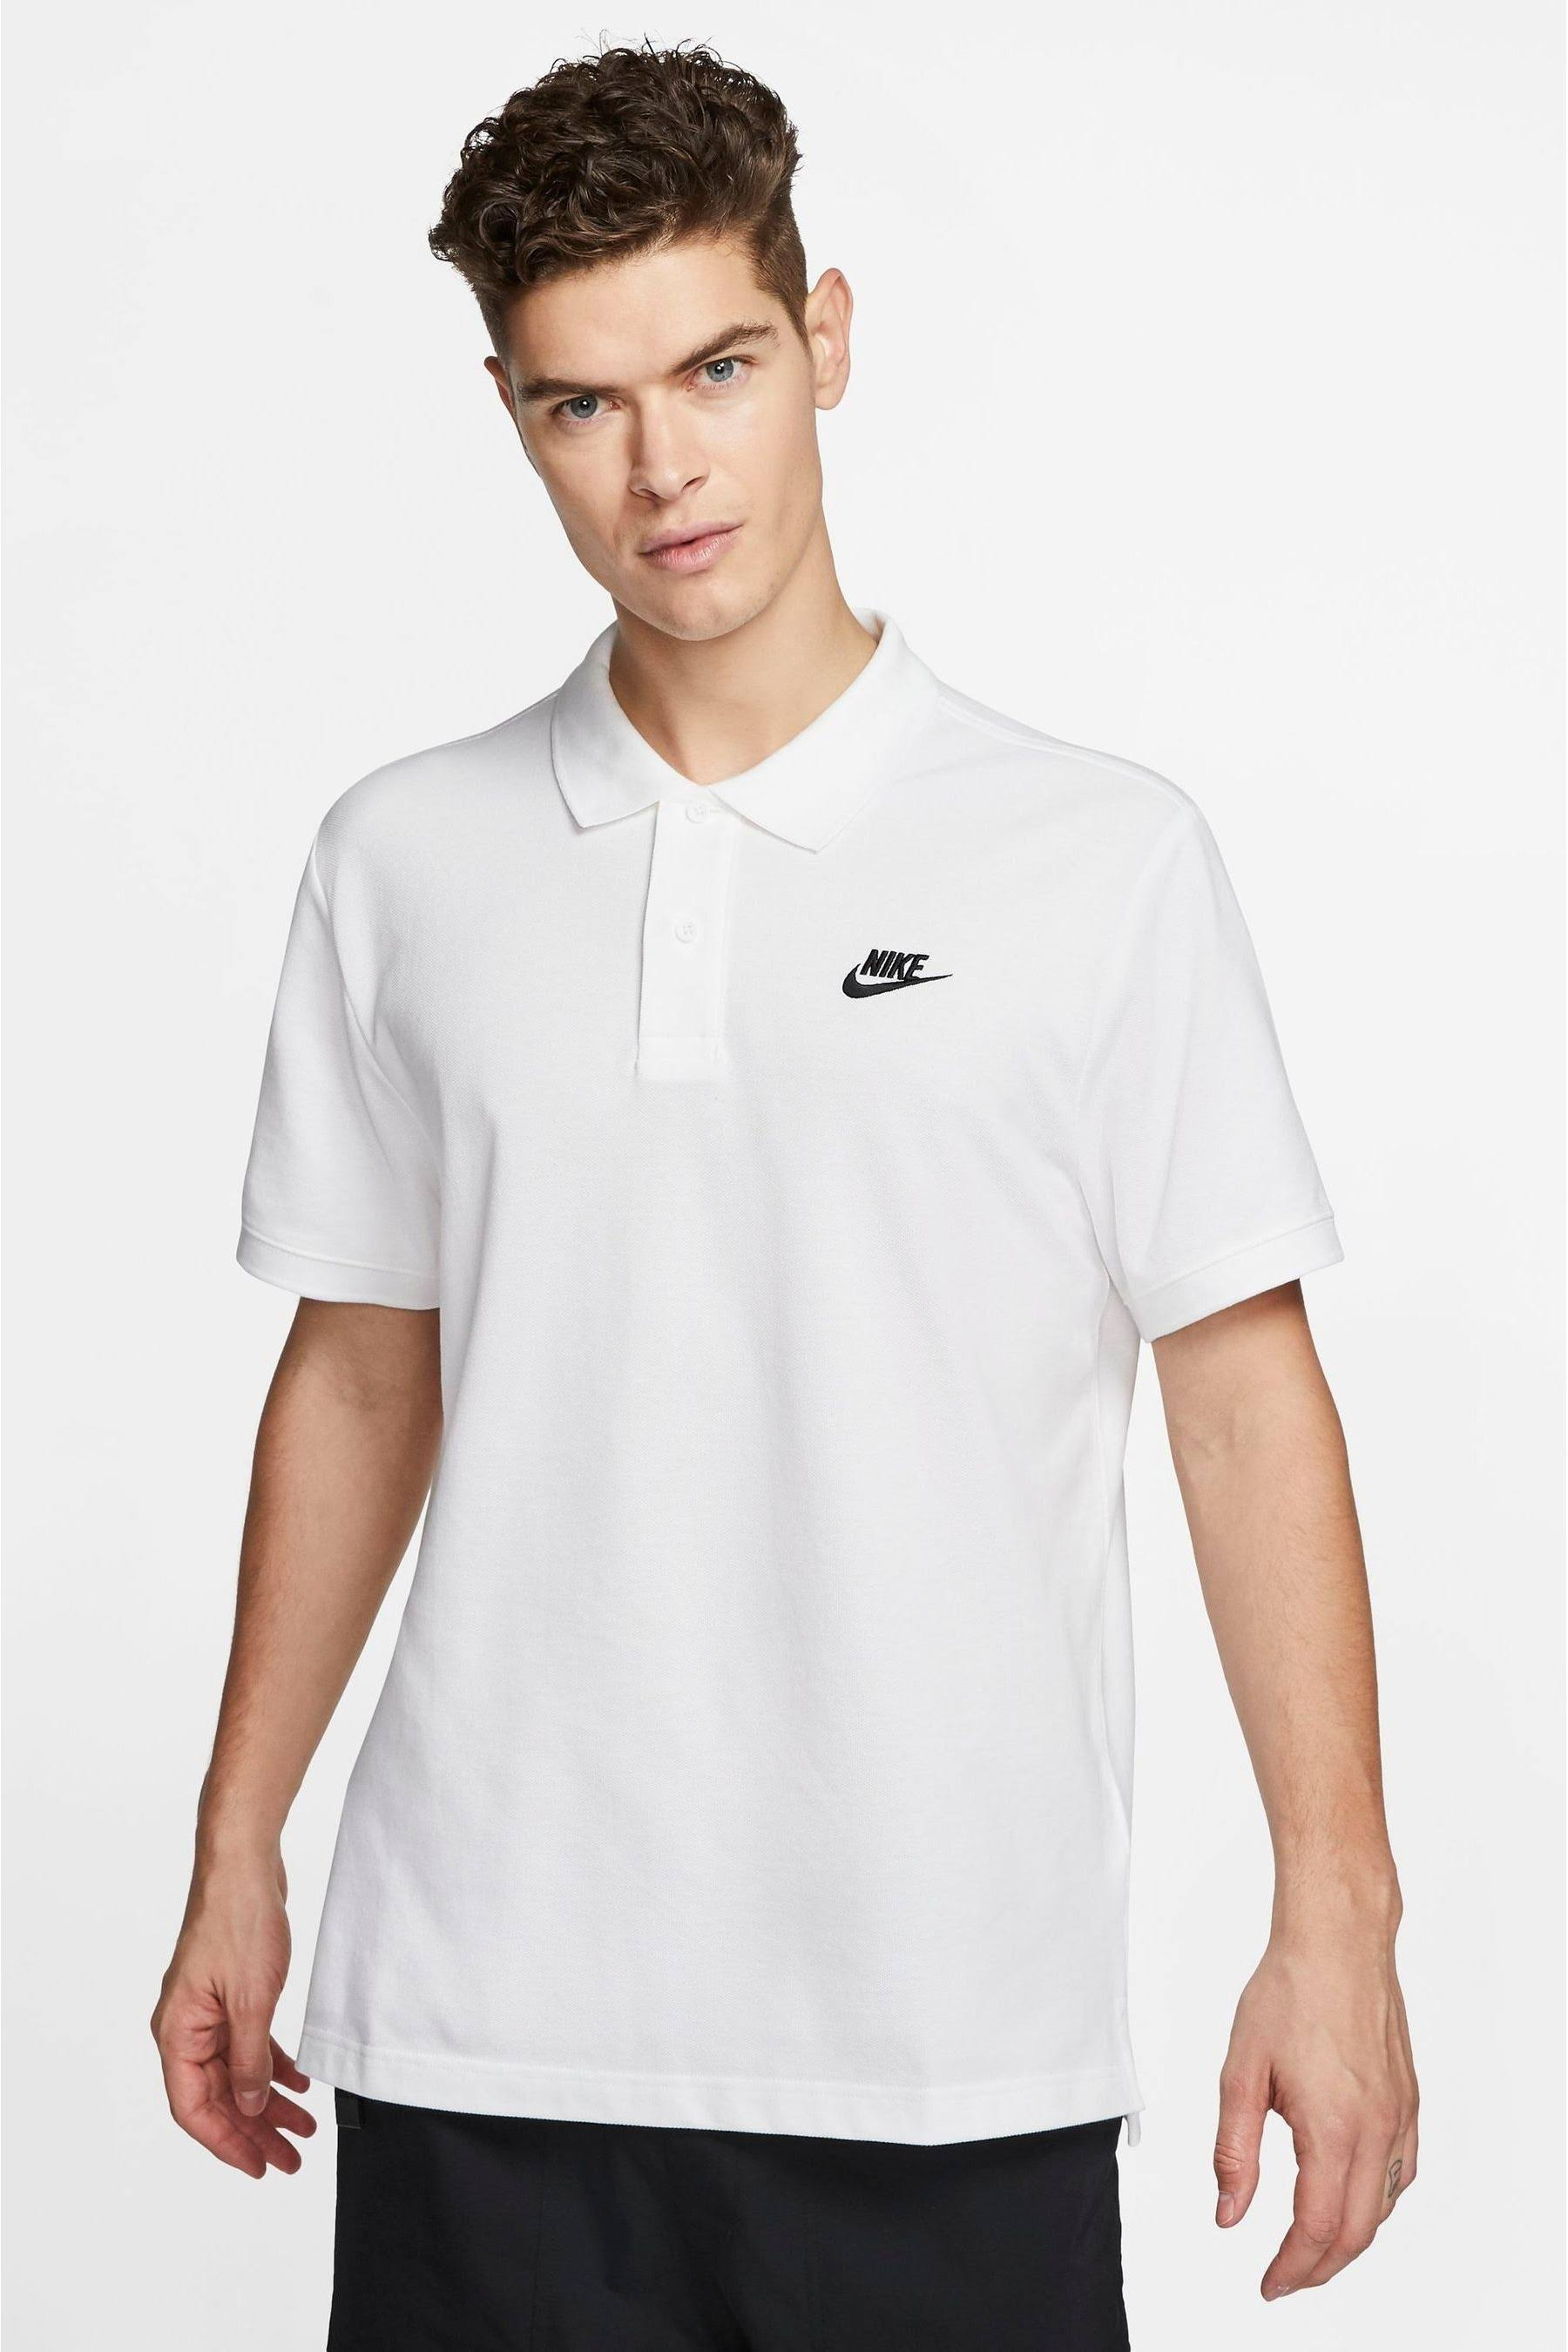 Nike RF Men Tennis Polo Shirt S White